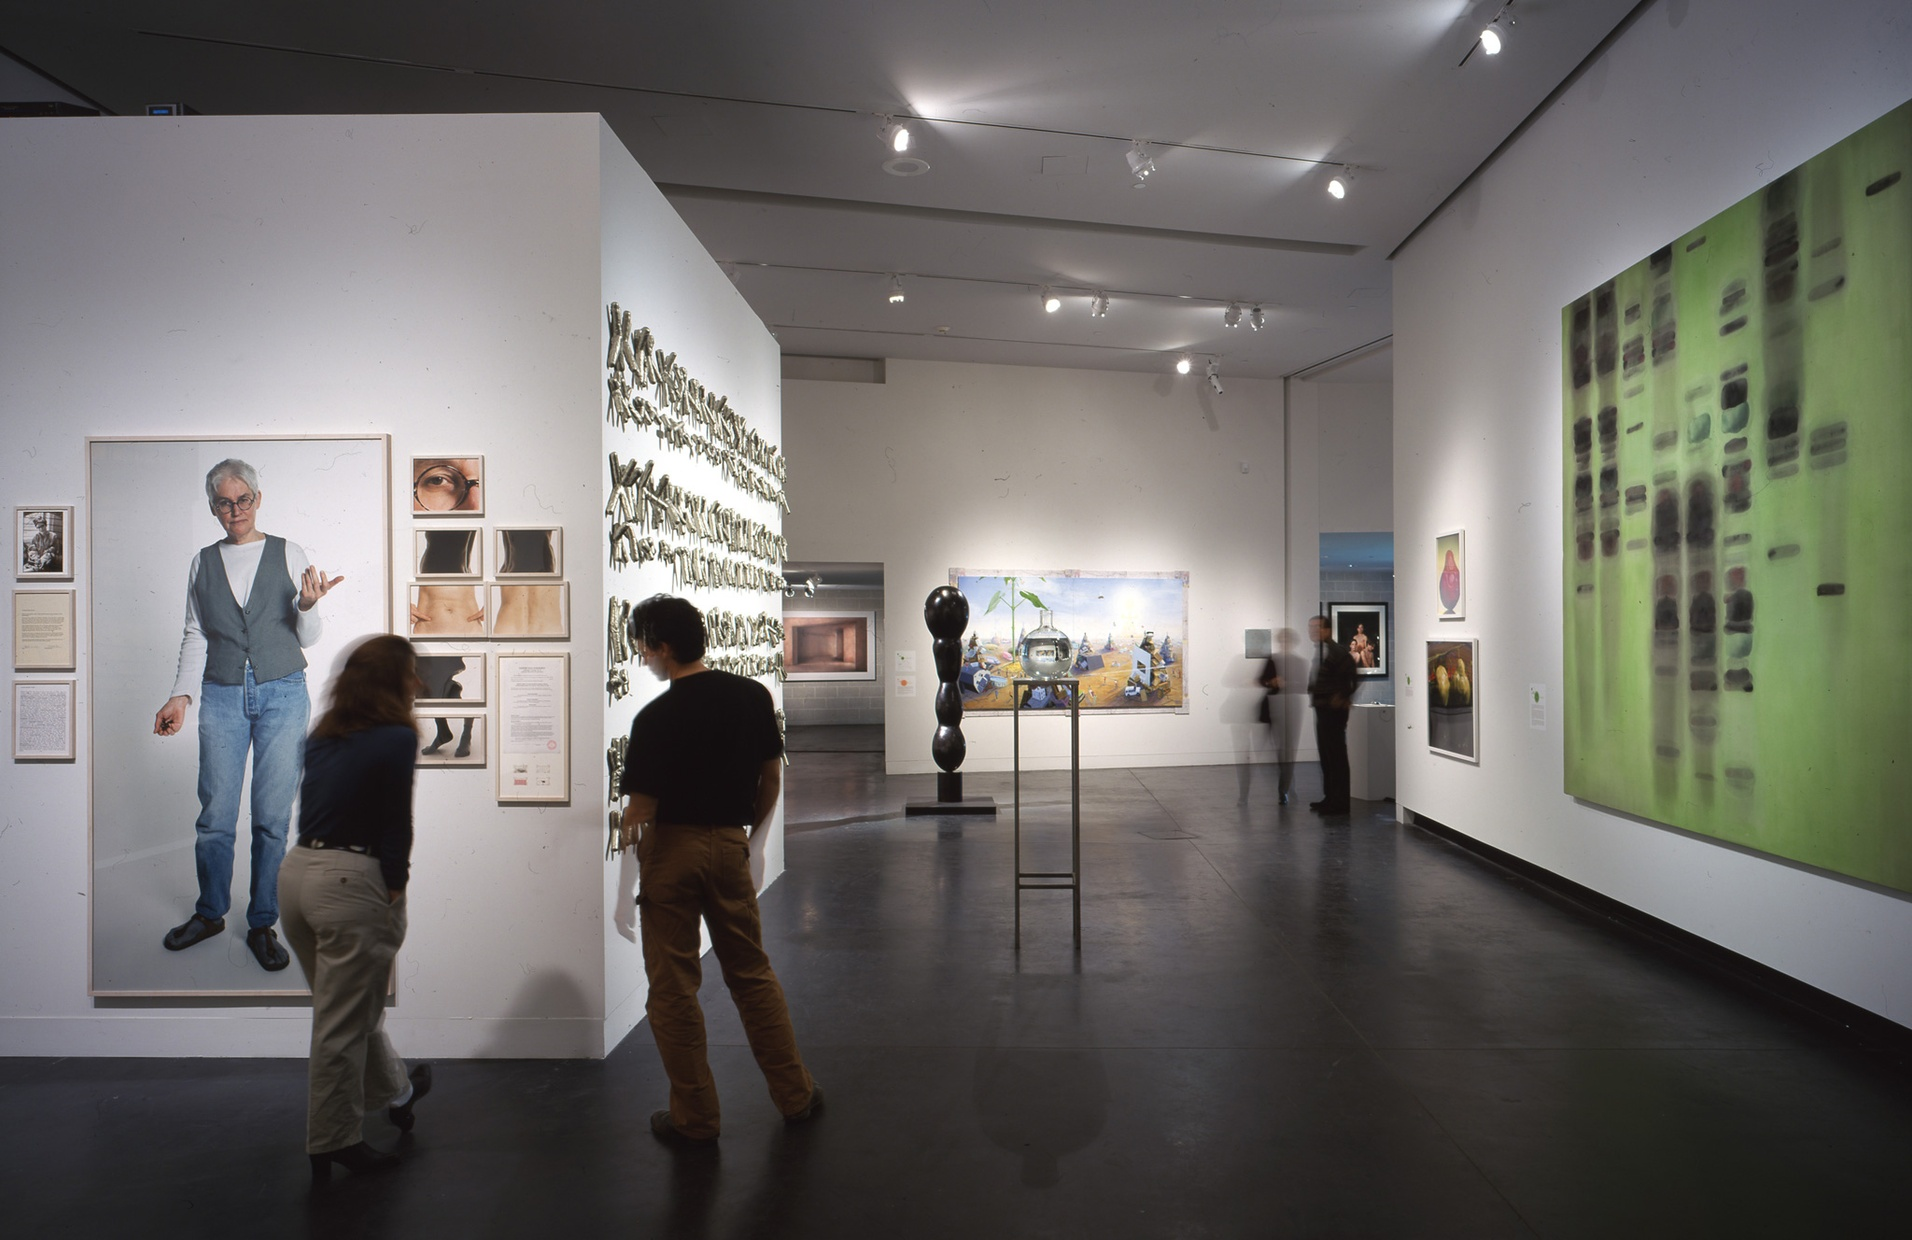 Two blurred people stand reading a wall label in a gallery next to numerous images of different sections of a human body.